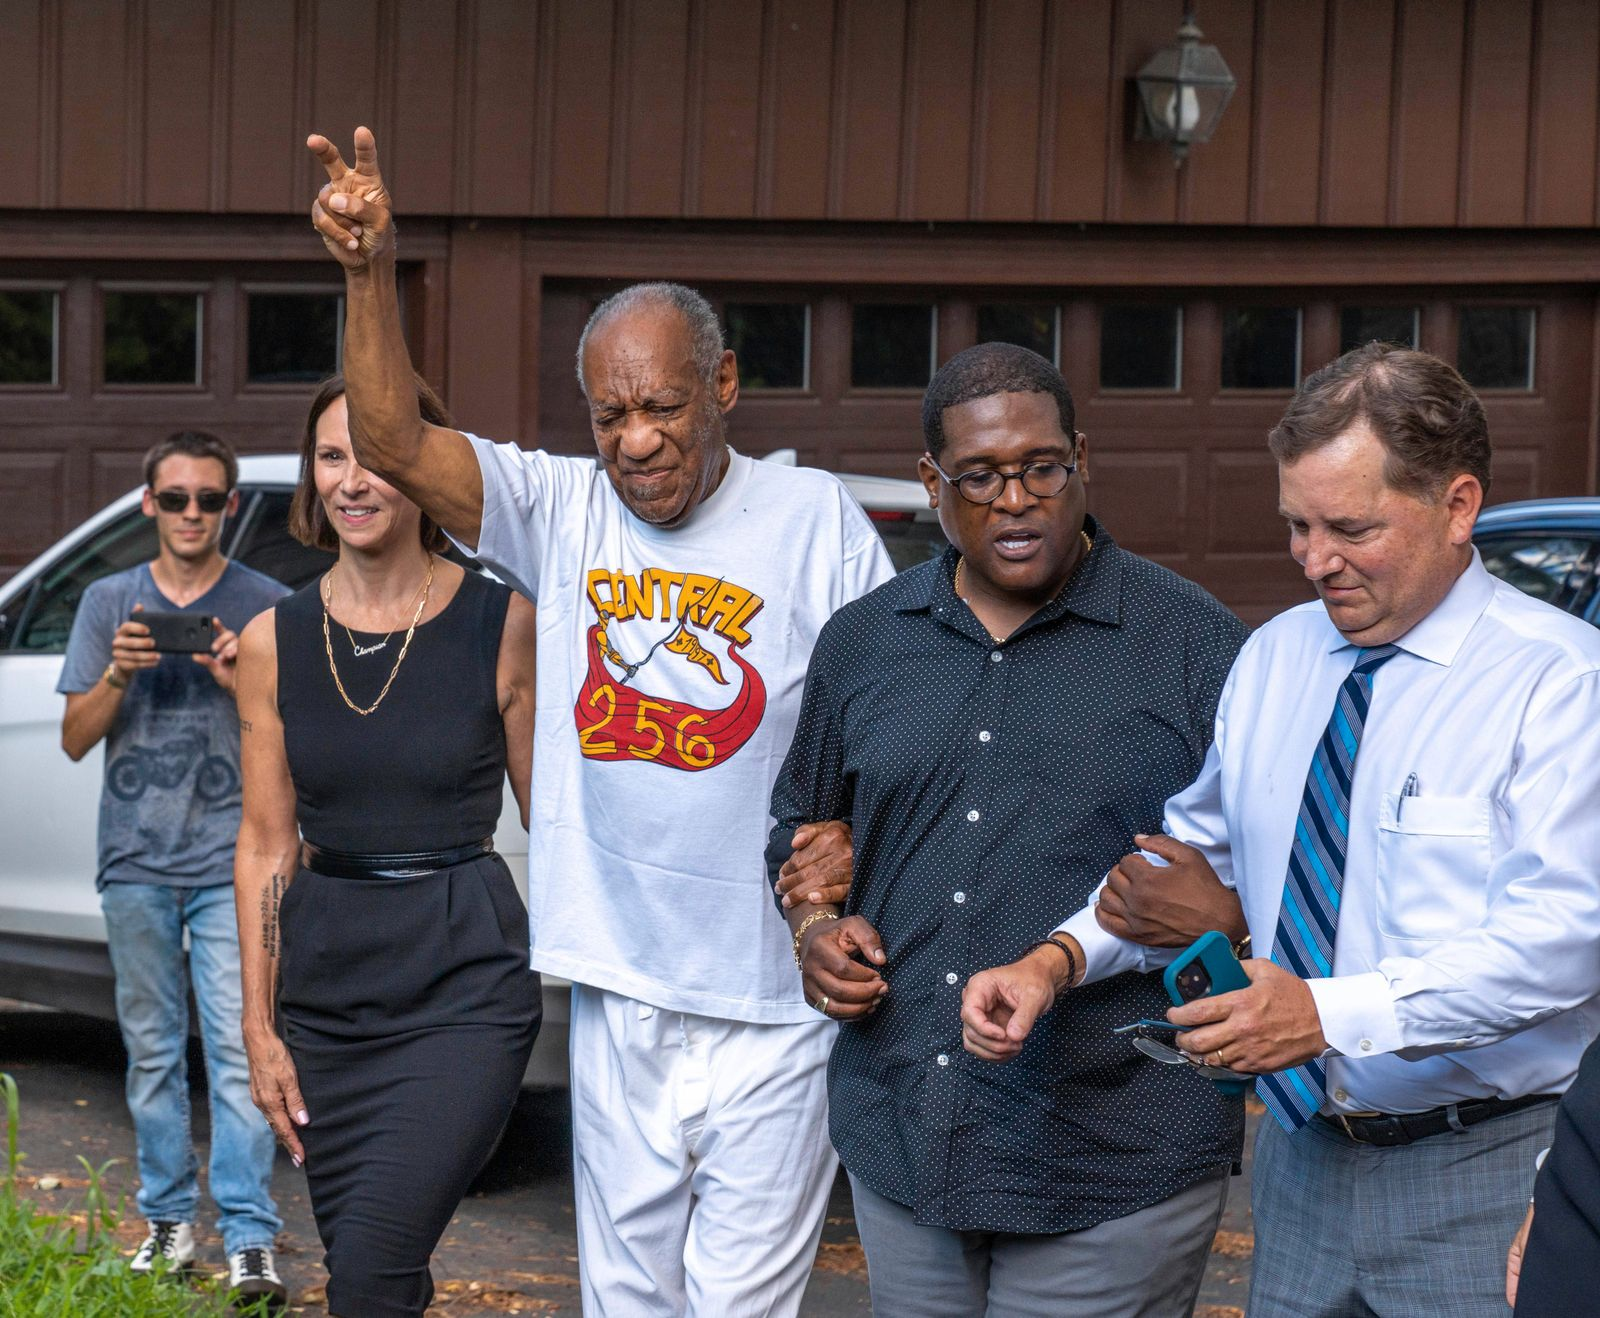 June 30, 2021, Elkins Park, Pennsylvania, USA: Comedian BILL COSBY, 83, hand raised with V for Victory, and spokesperson